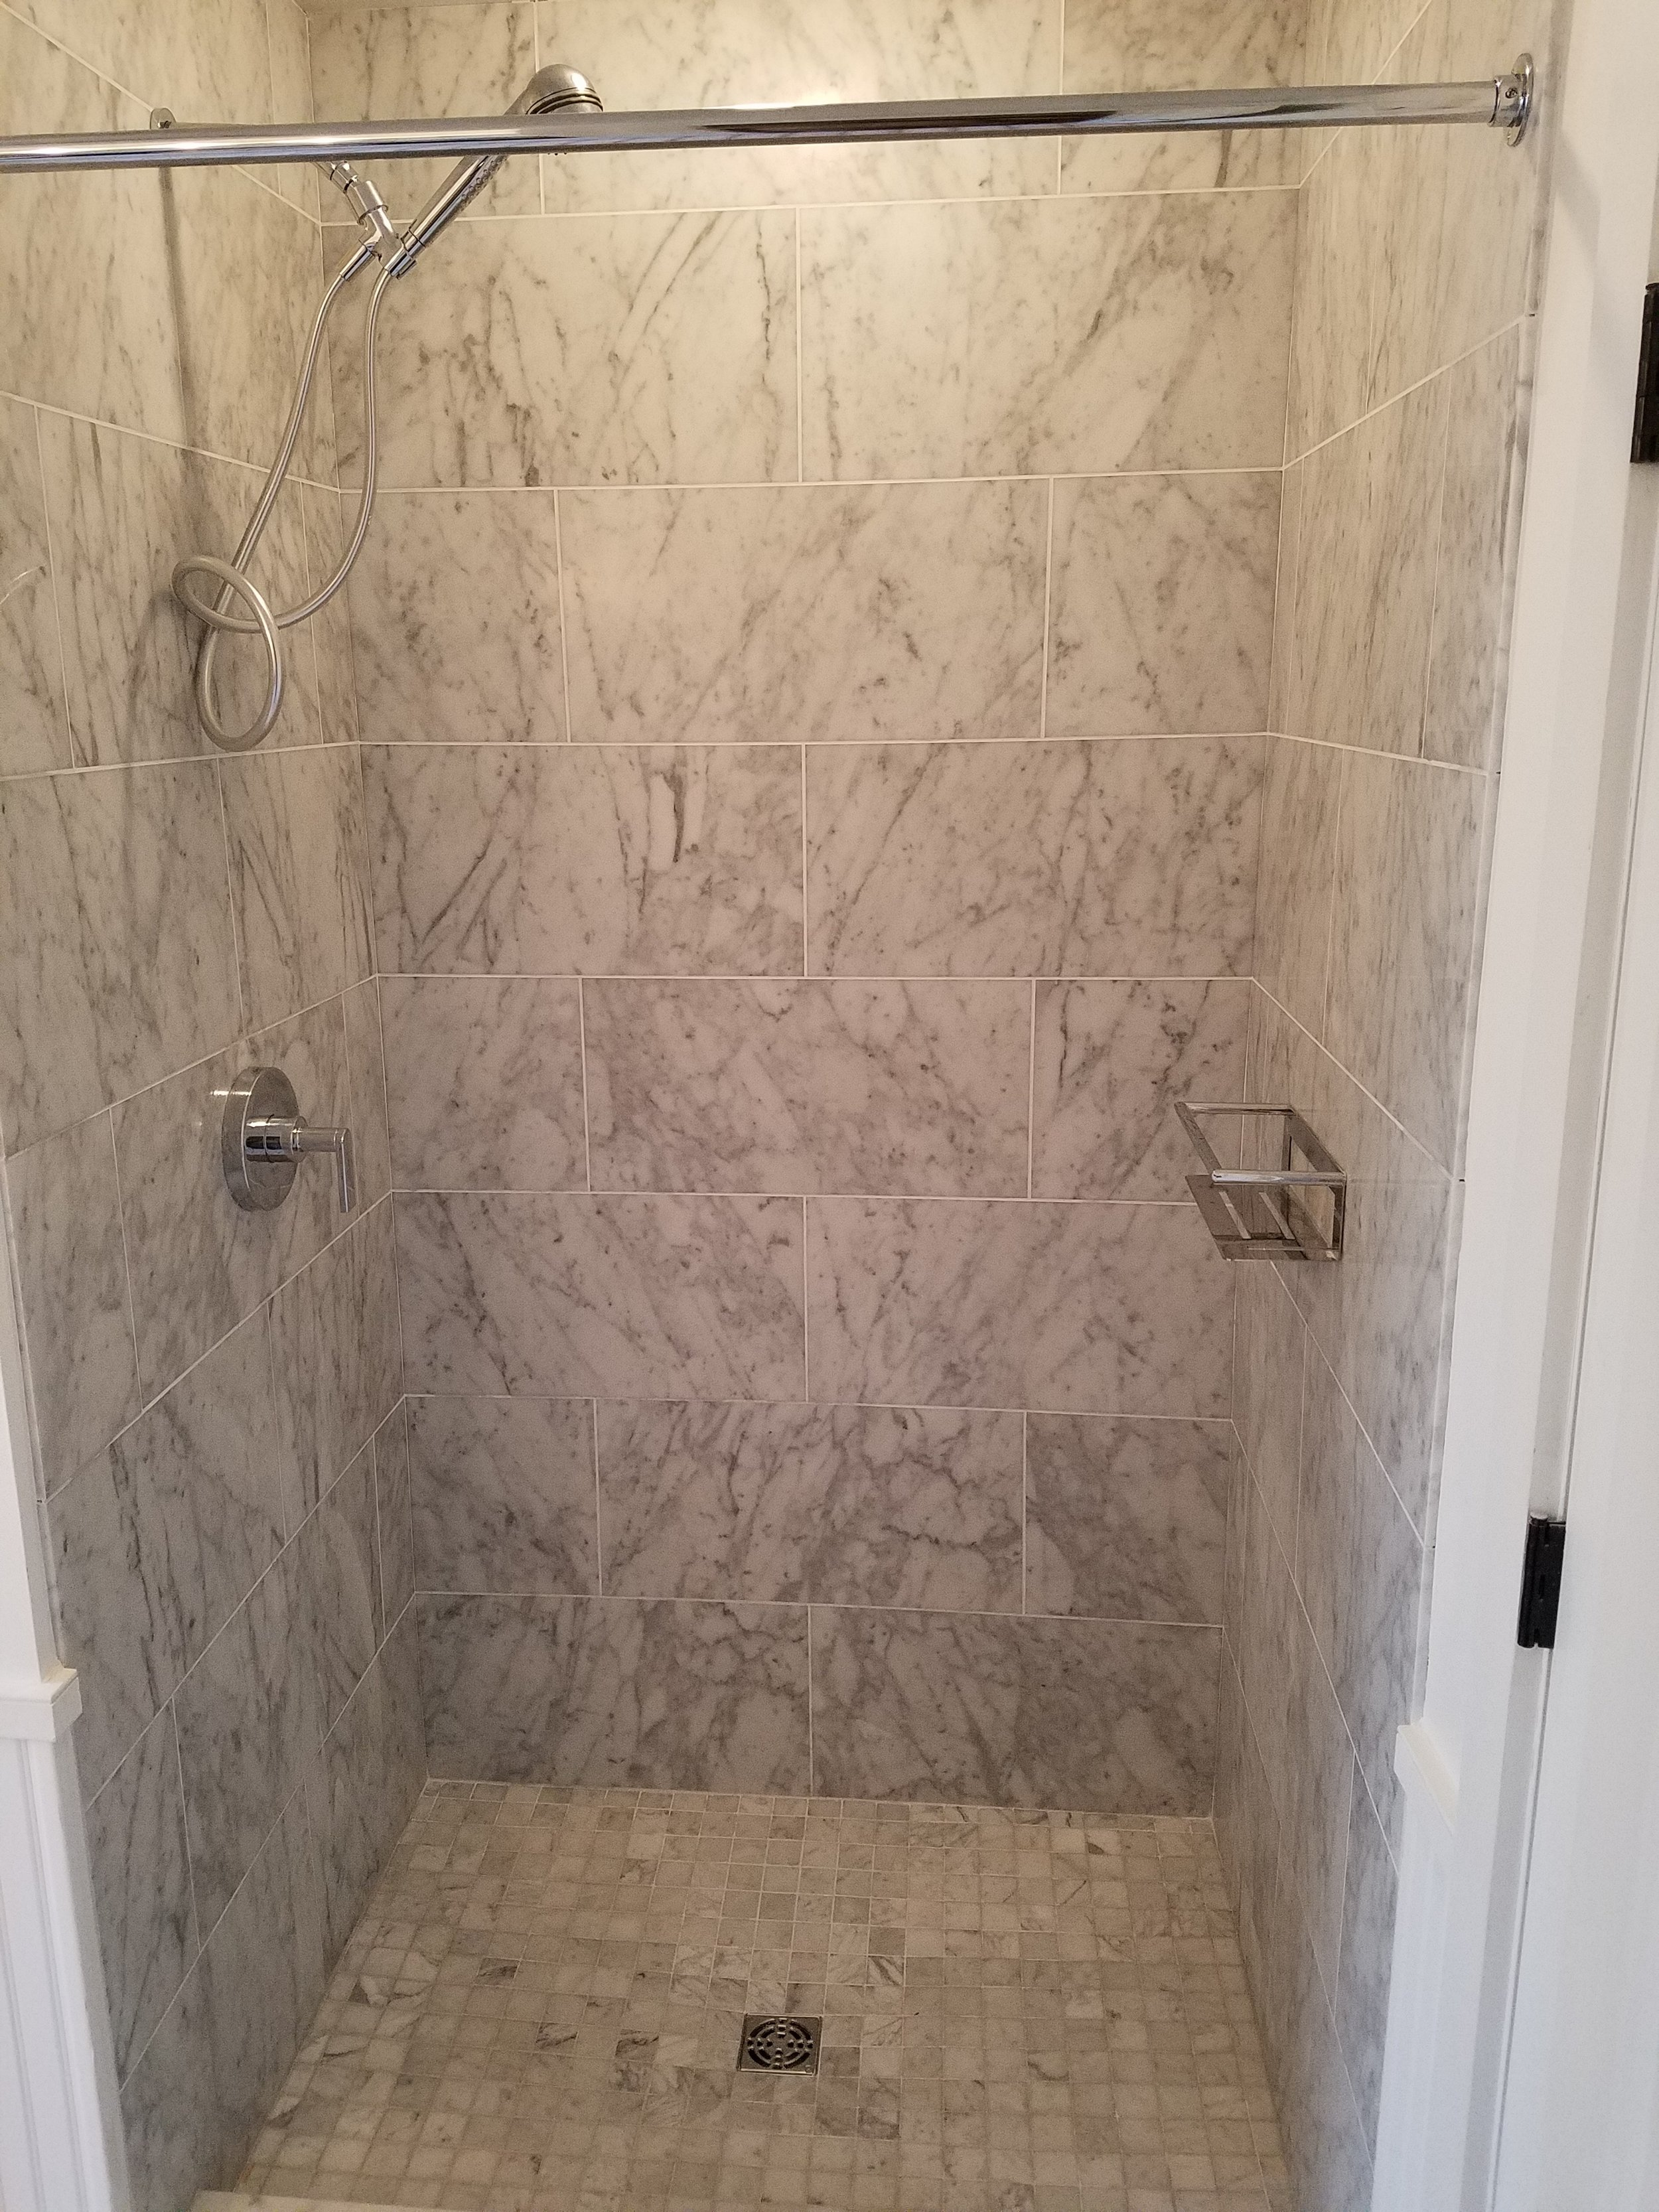 Tiled shower3.jpg